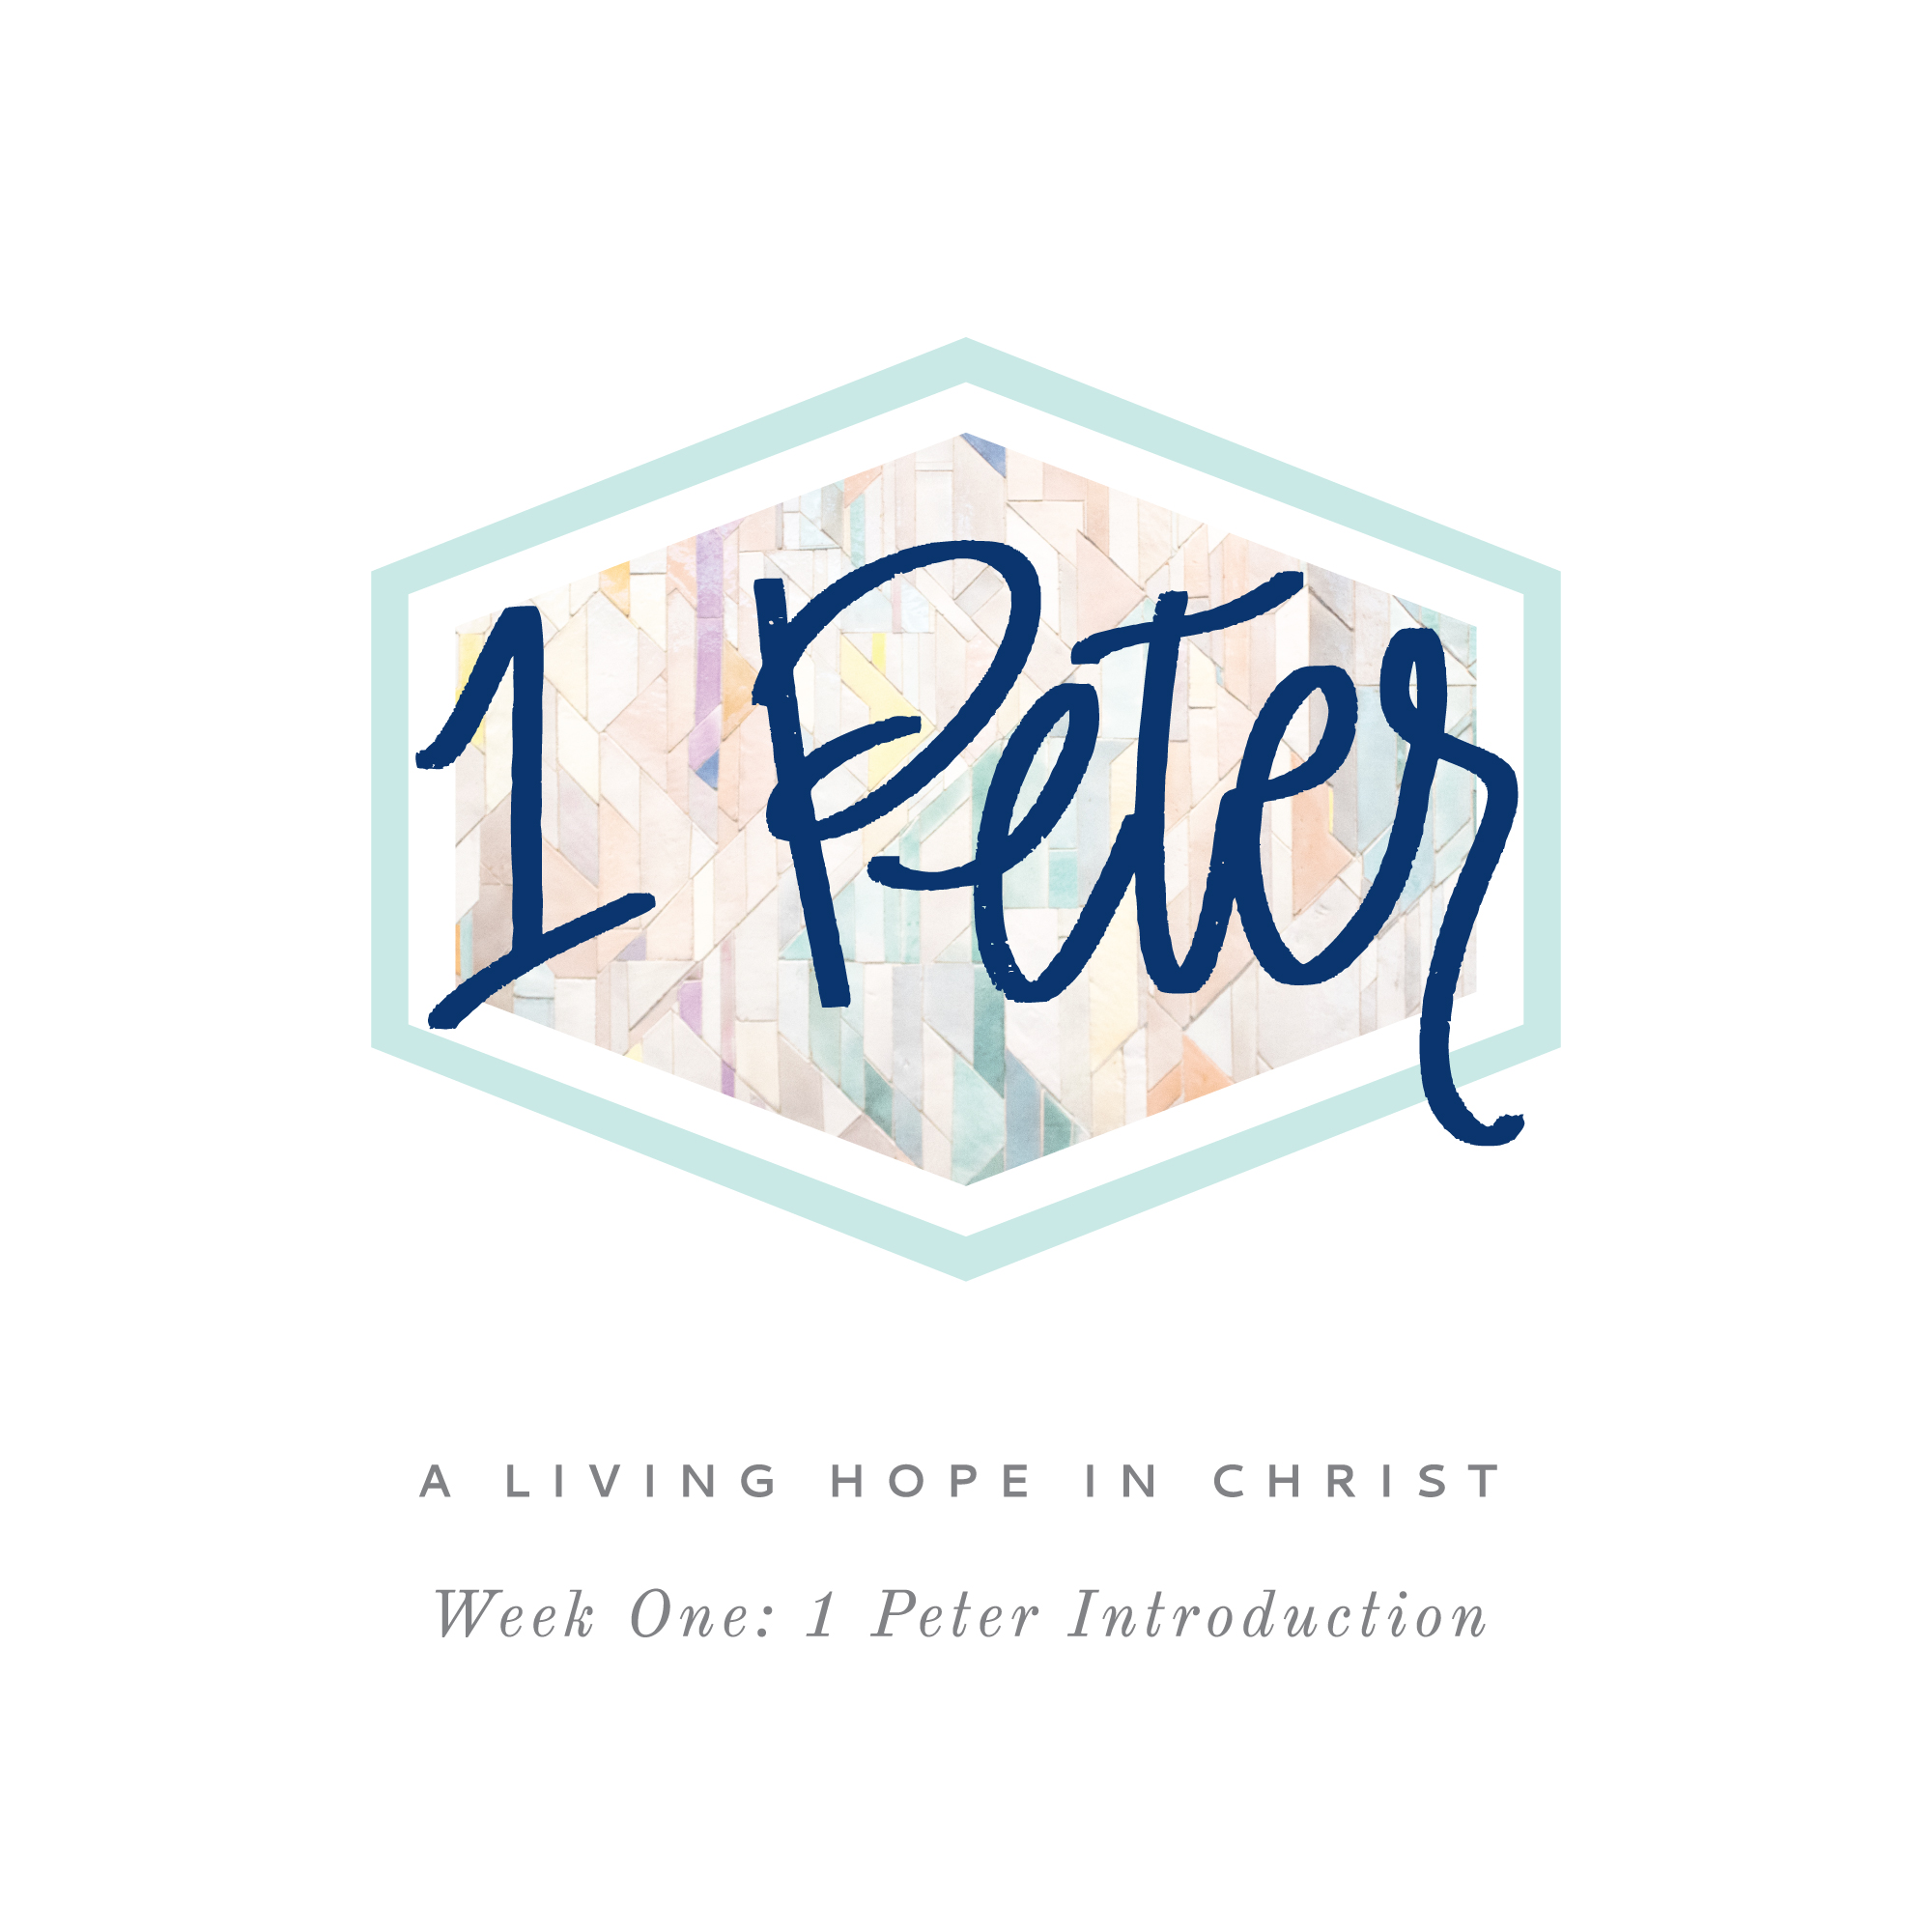 1 Peter Week 1: 1 Peter Introduction